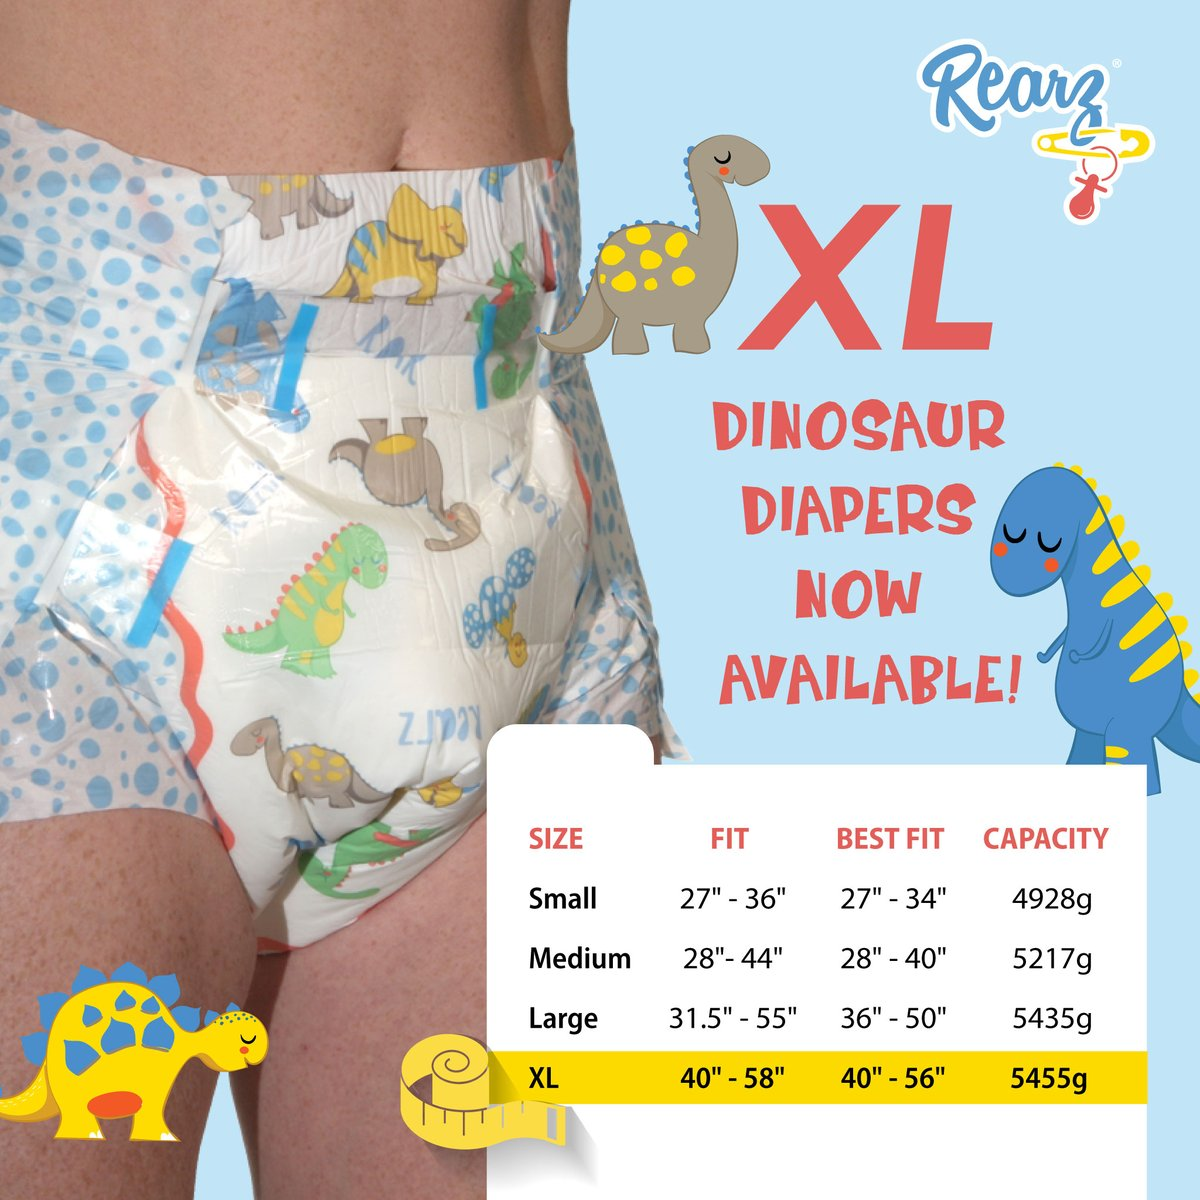 XL Dinosaur Diapers now available!  https://t.co/R5zzDhMVSi  #rearz #rearzinc #rearzdiapers #adultdiapers #adultnappies #diaperfetish #abdl #cglg #cglb #diaperbutt #incontinence #abdldiapers #adultbaby #diaperedbum #ageplay #littlespace #diaperlover #thickdiapers #abdlcommunity https://t.co/d9AIoaZGdO